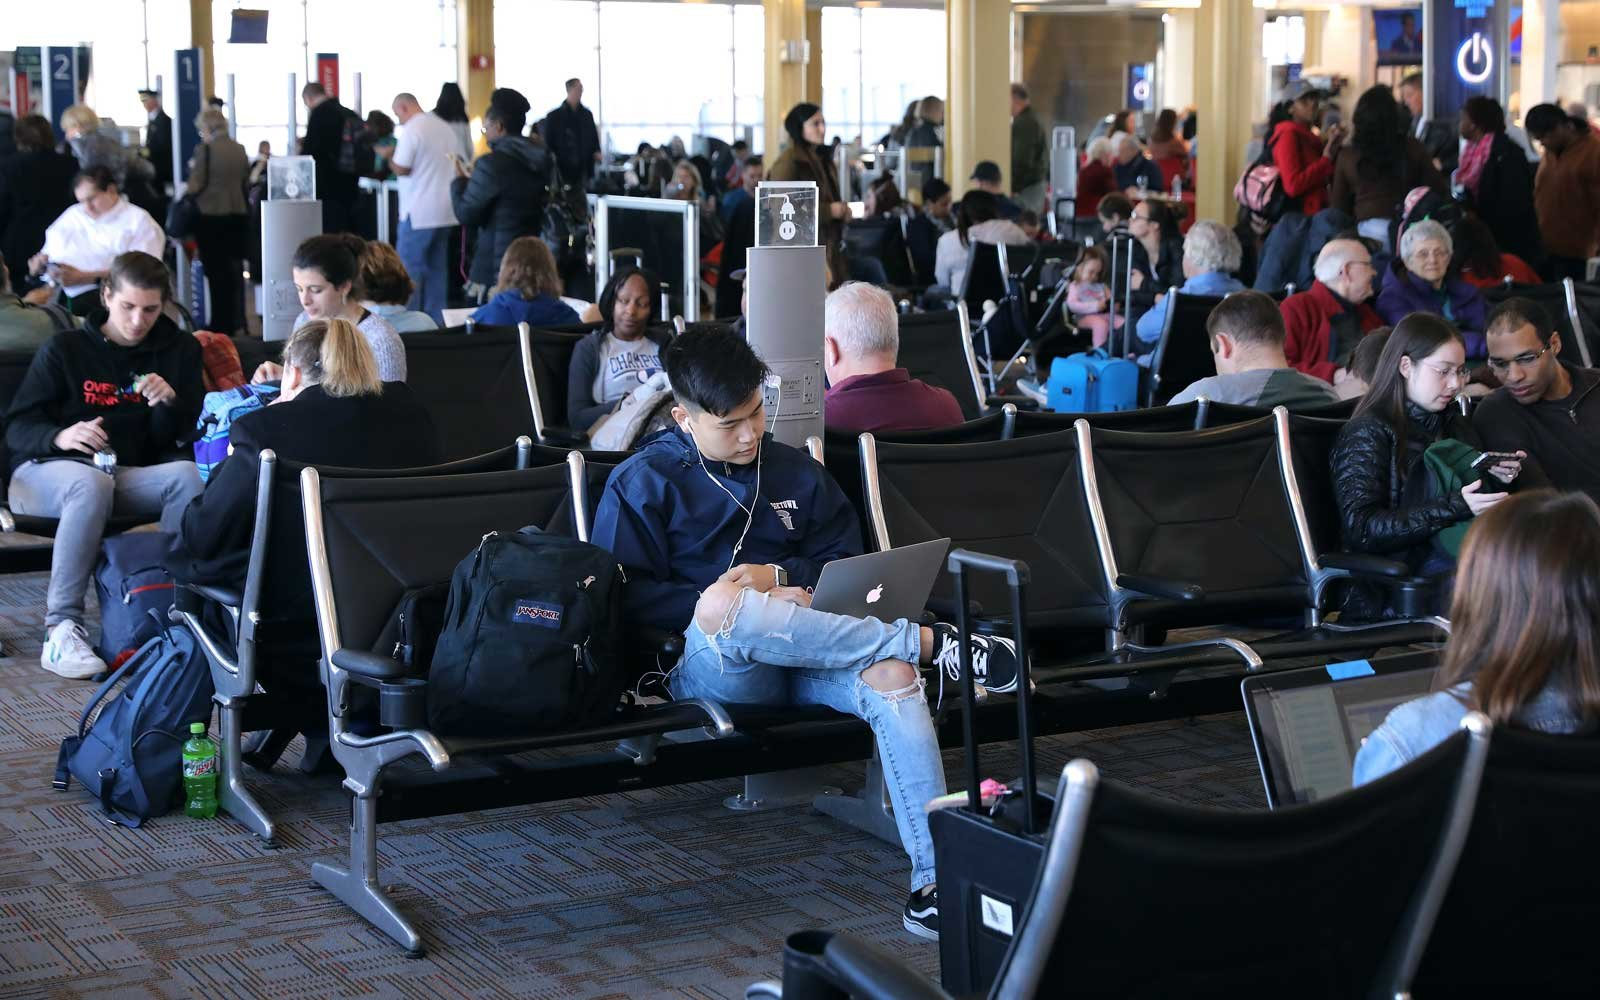 Here are the airports with the shortest and longest wait times around Thanksgiving